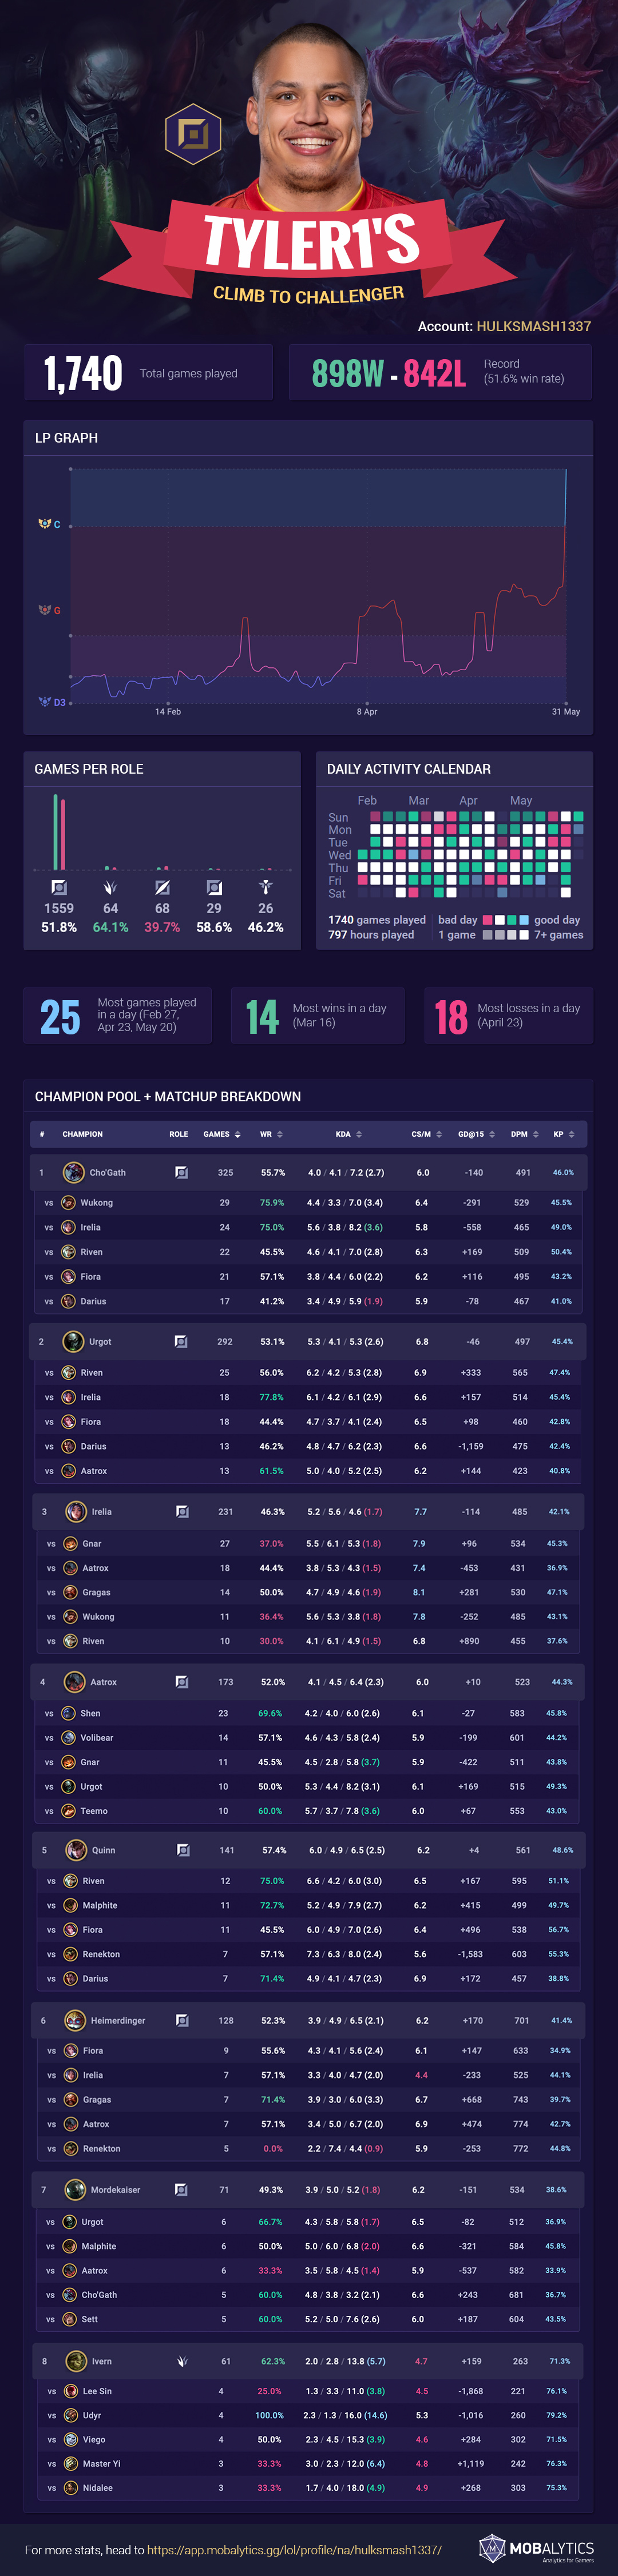 Tyler1's Unranked to Challenger Top Climb (Season 11) – Infographic